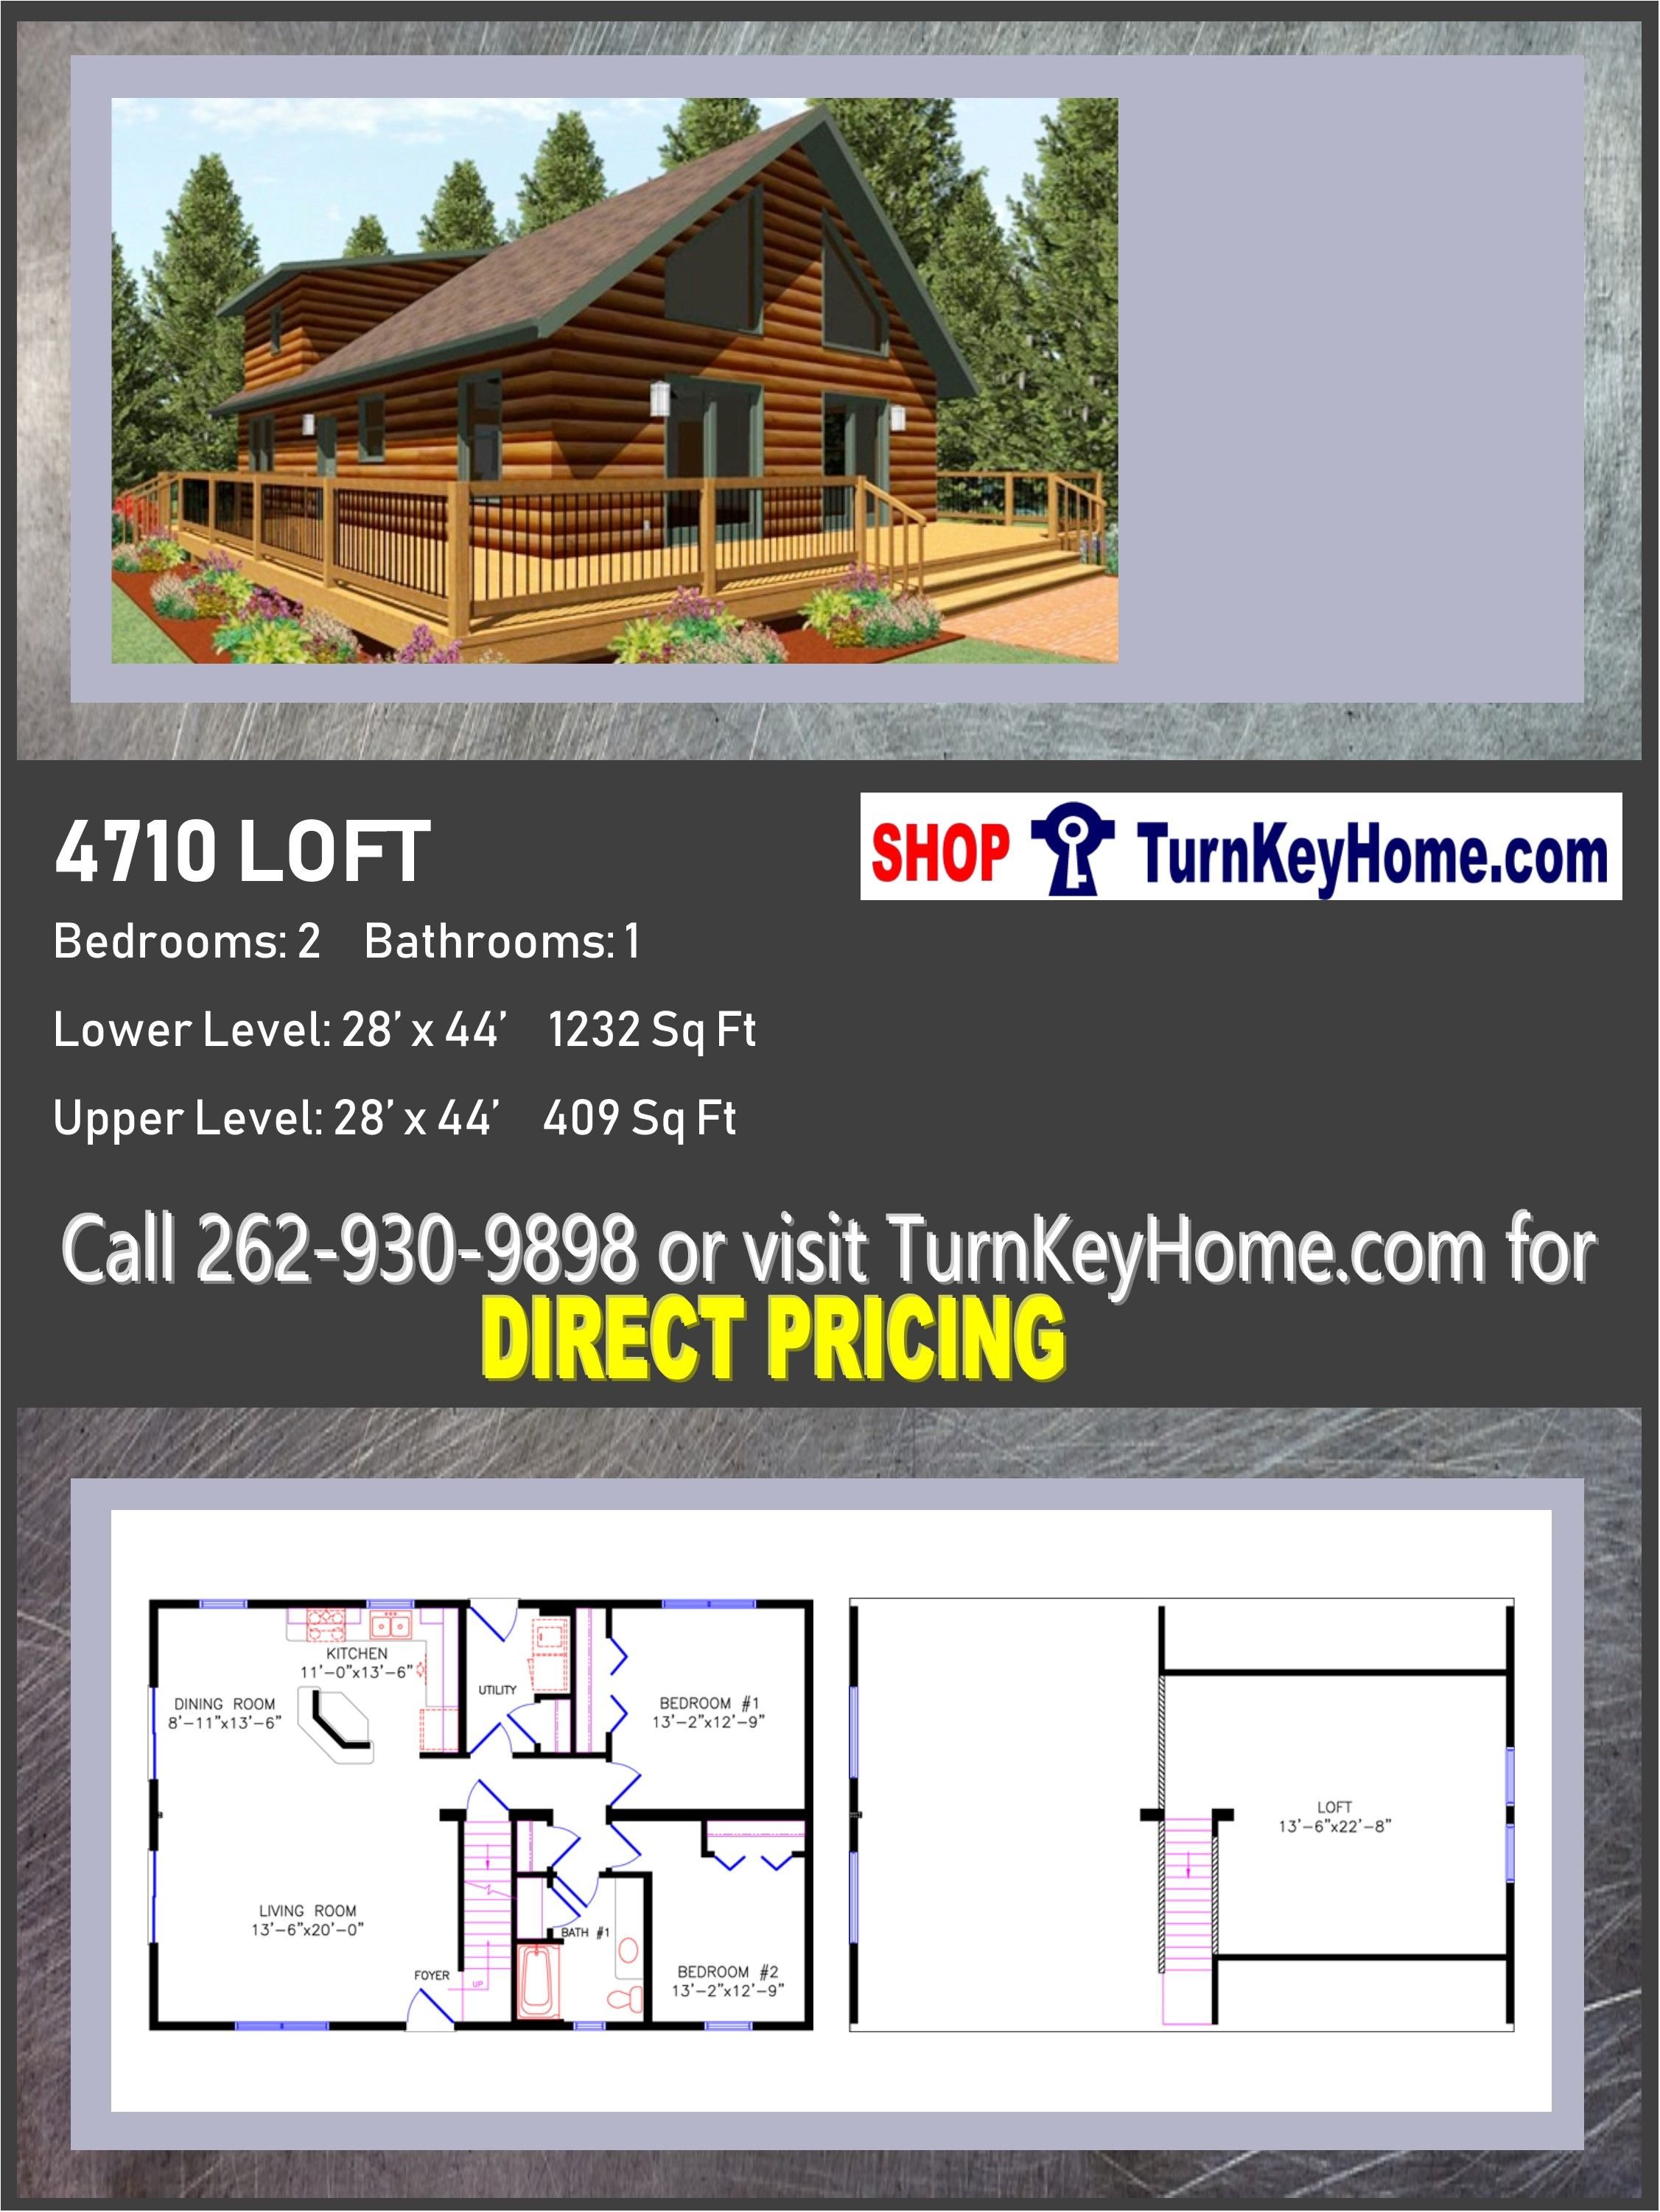 4710 Chalet Style Modular Home From Wisconsin Homes Inc Home Inc Modular Homes Chalet Style